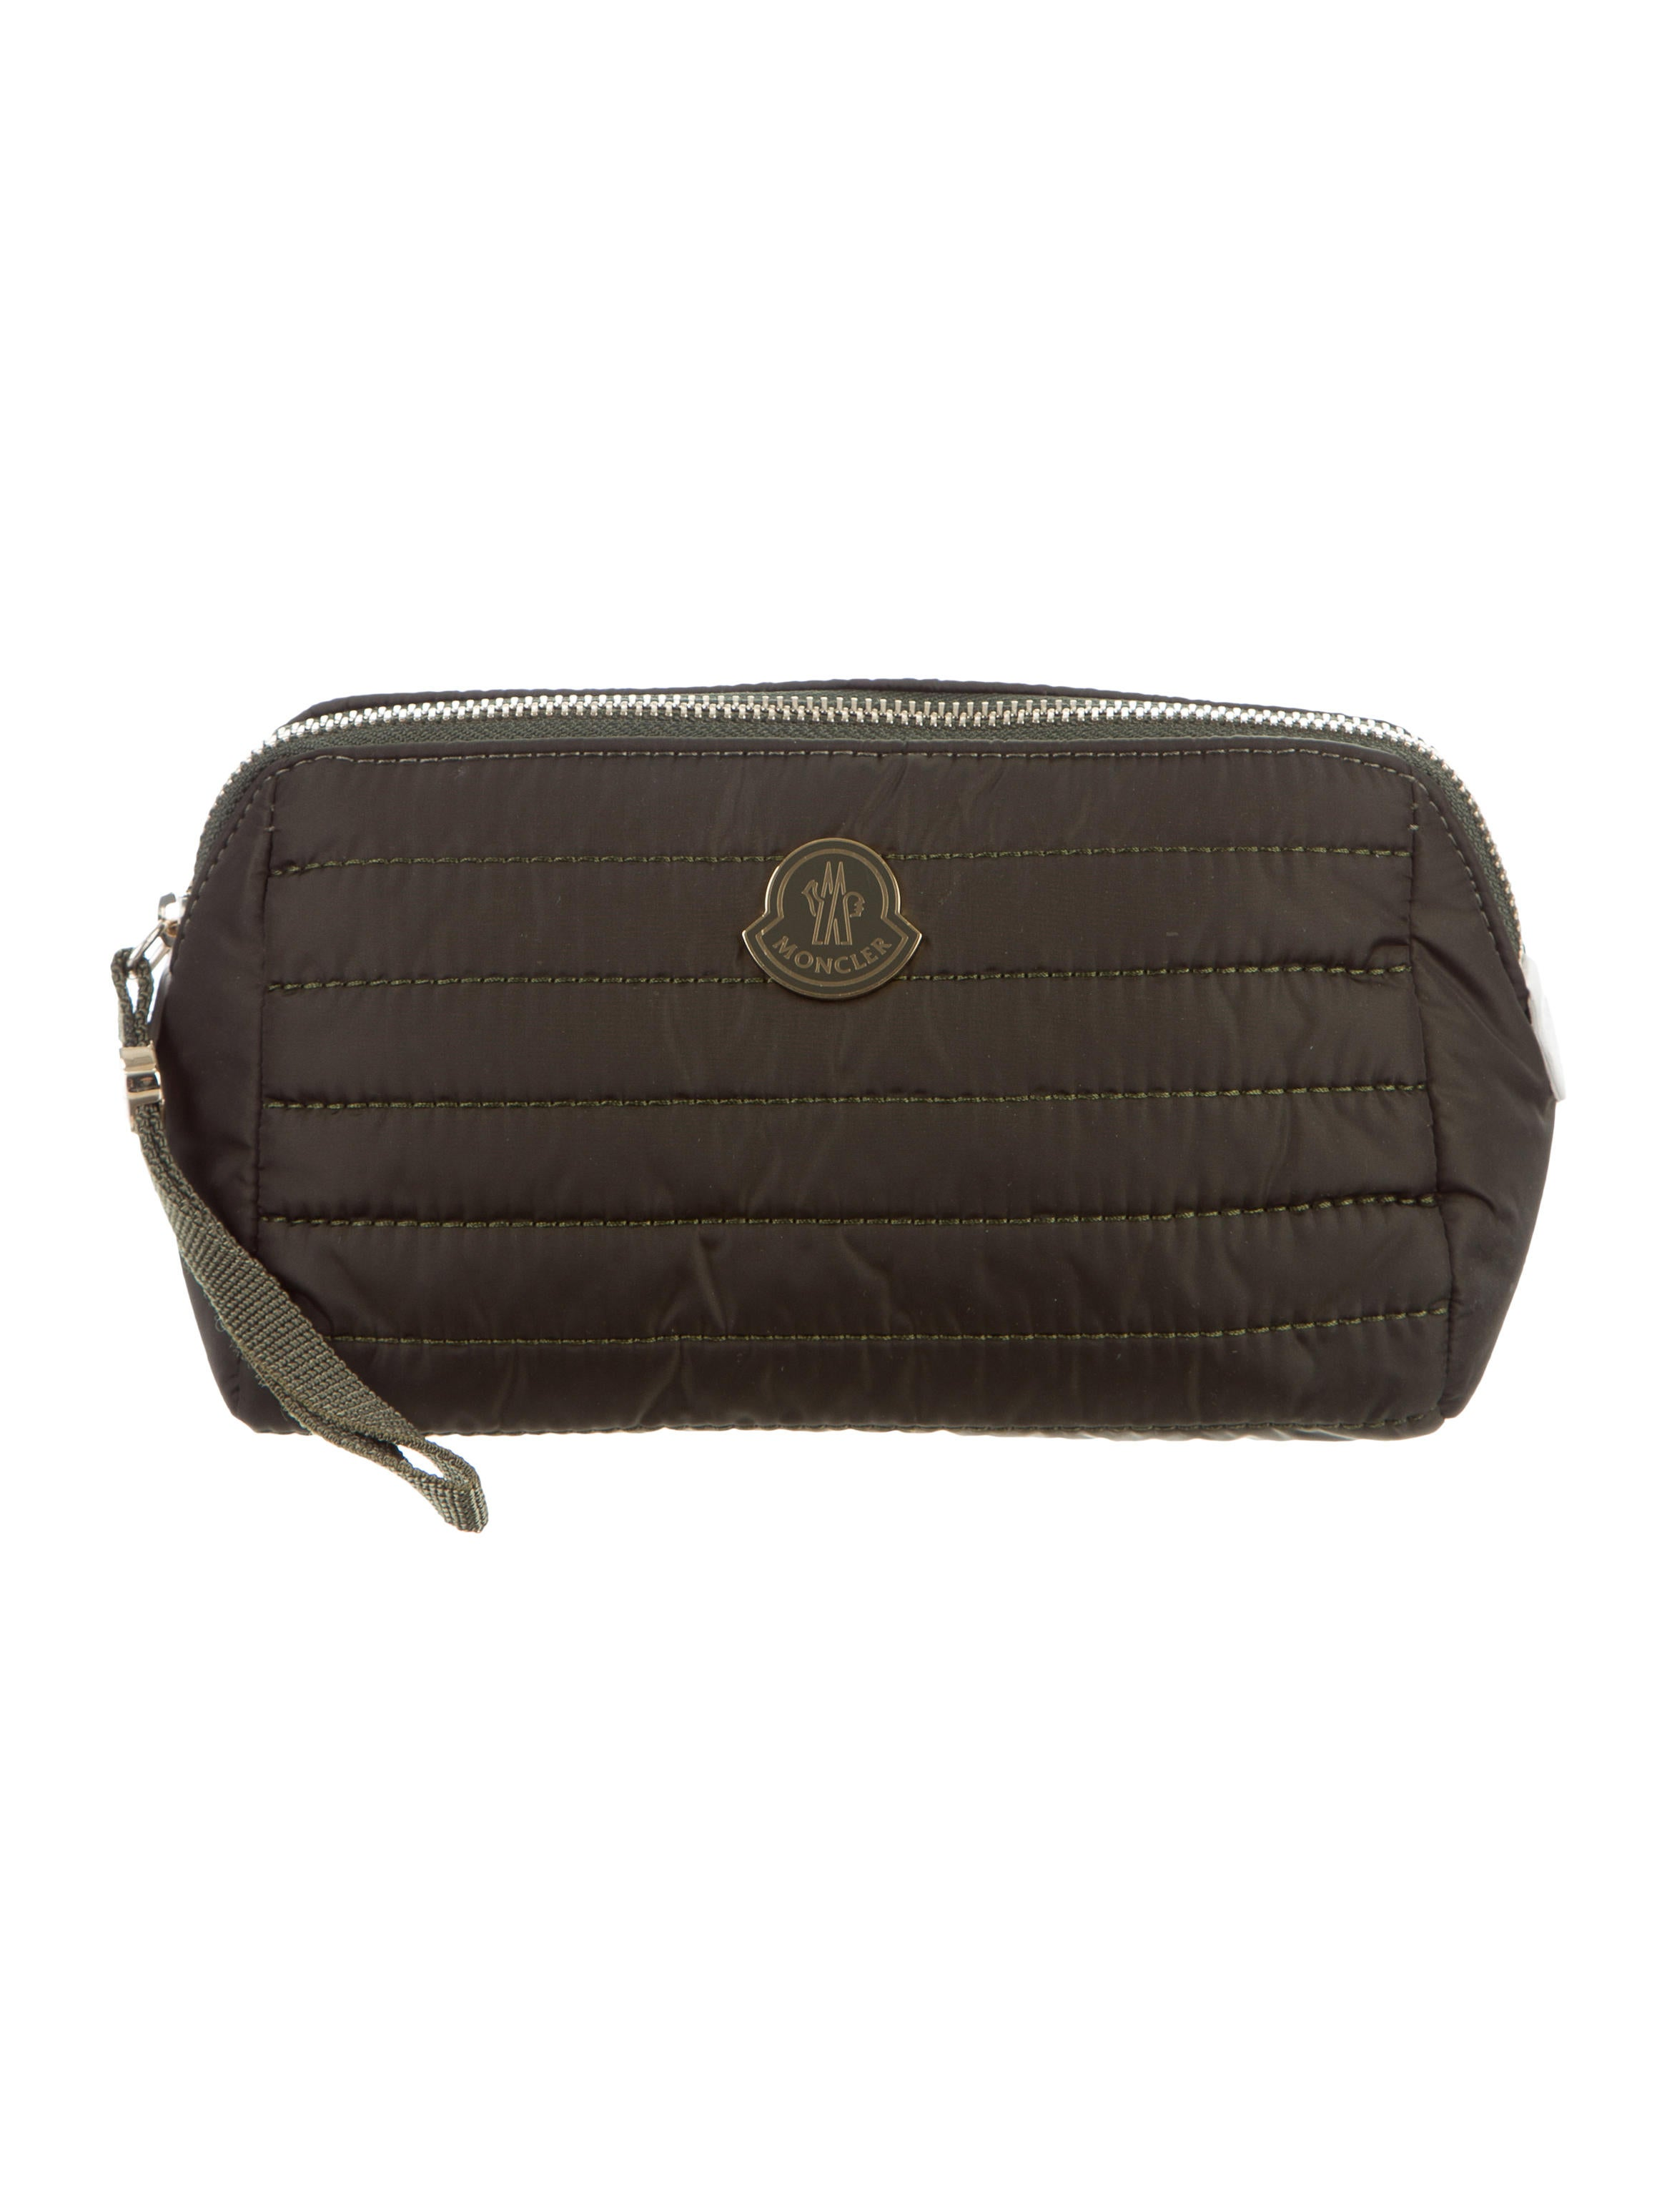 Moncler Quilted Nylon Cosmetic Bag w  Tags - Accessories - MOC25016 ... 7e2da7592132c